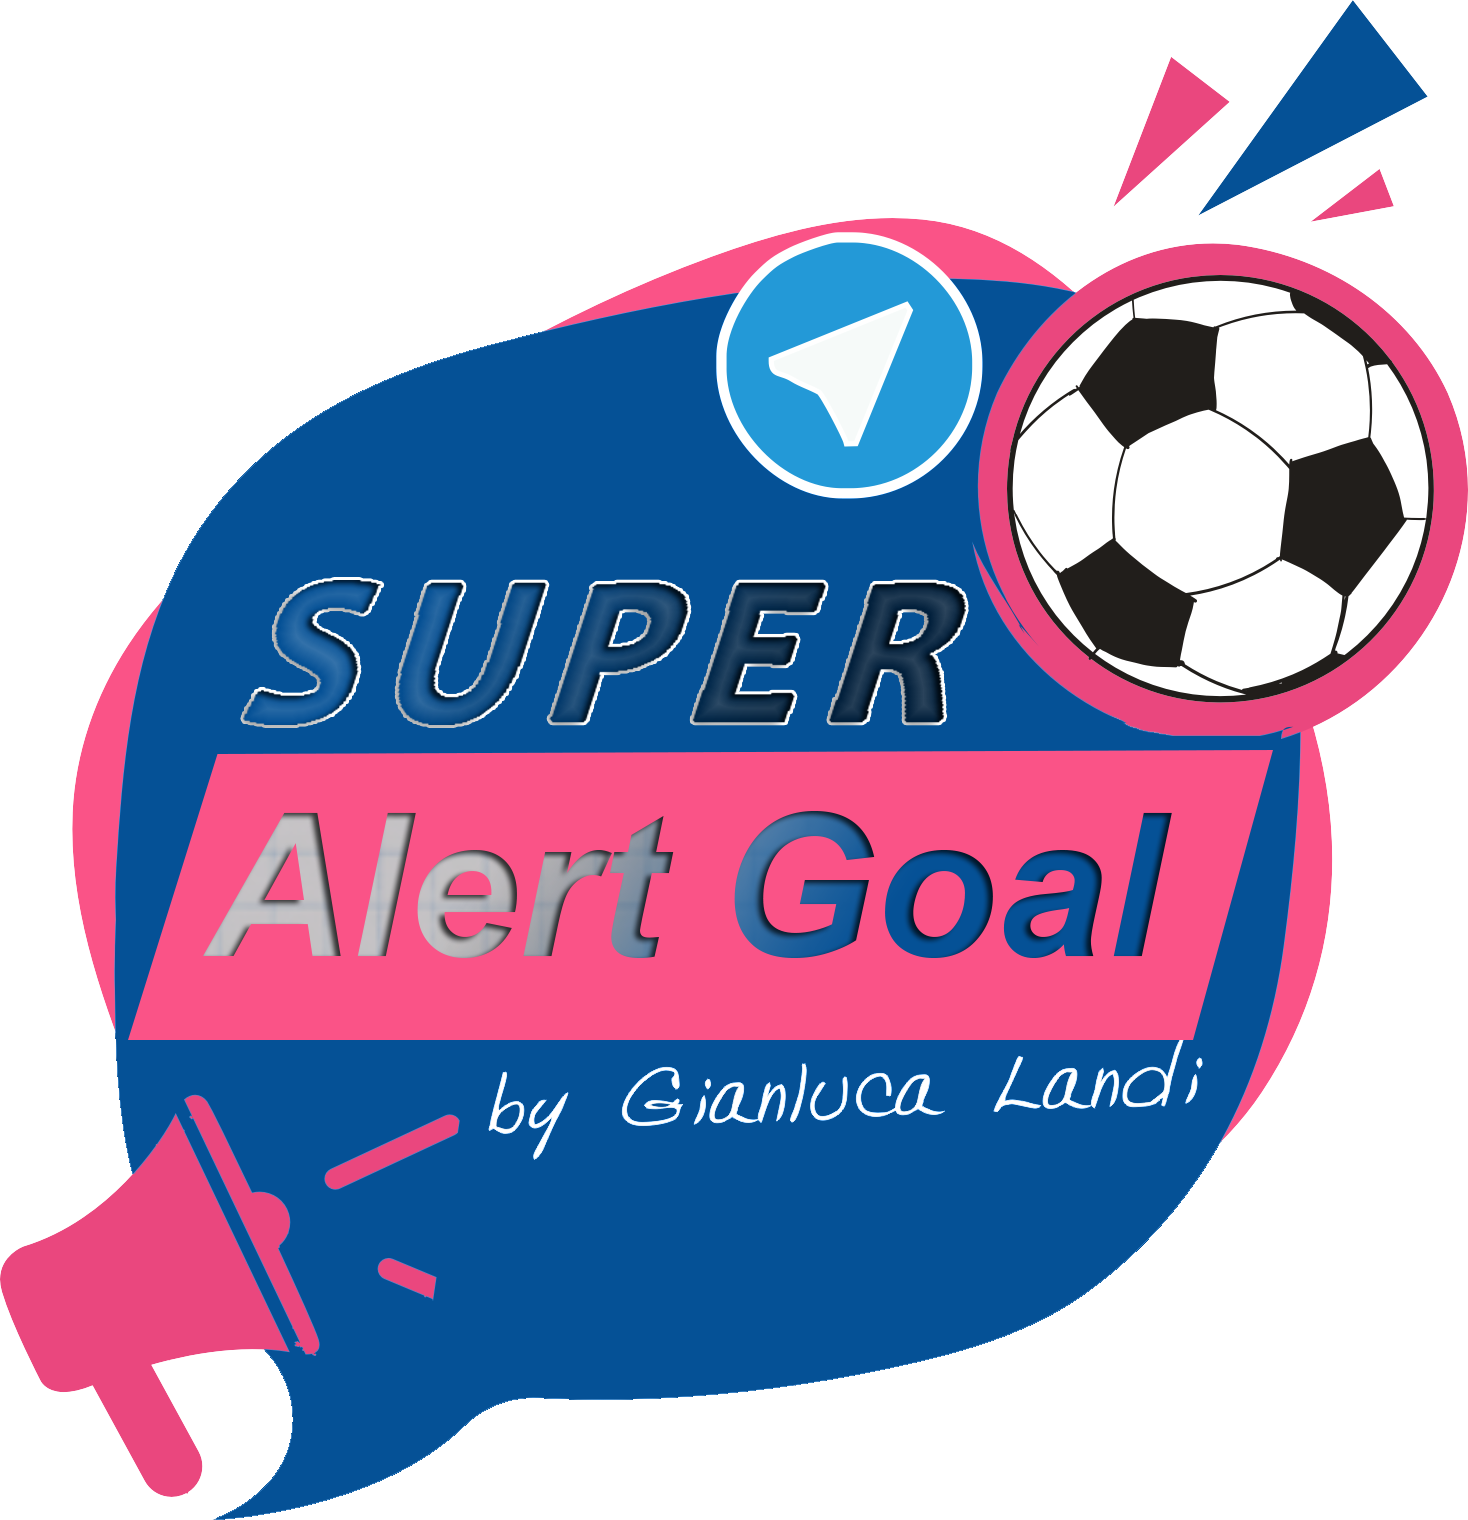 Super Alert Goal by Gianluca Landi